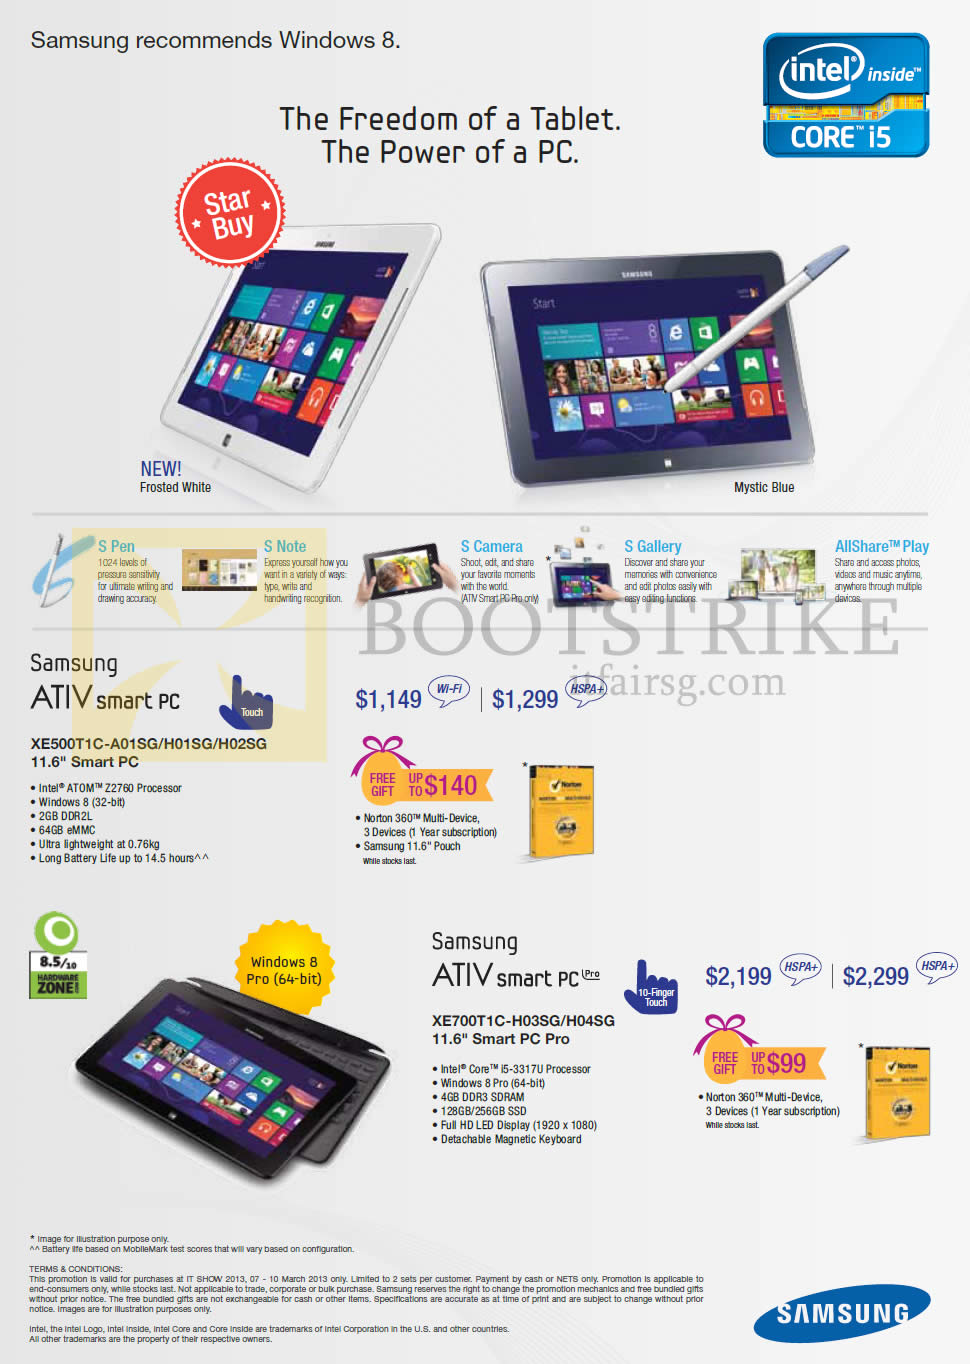 IT SHOW 2013 price list image brochure of Samsung Tablets ATIV Smart PC XE500T1C-A01SG H01SG H02SG, Pro XE700T1C-H03SG H04SG